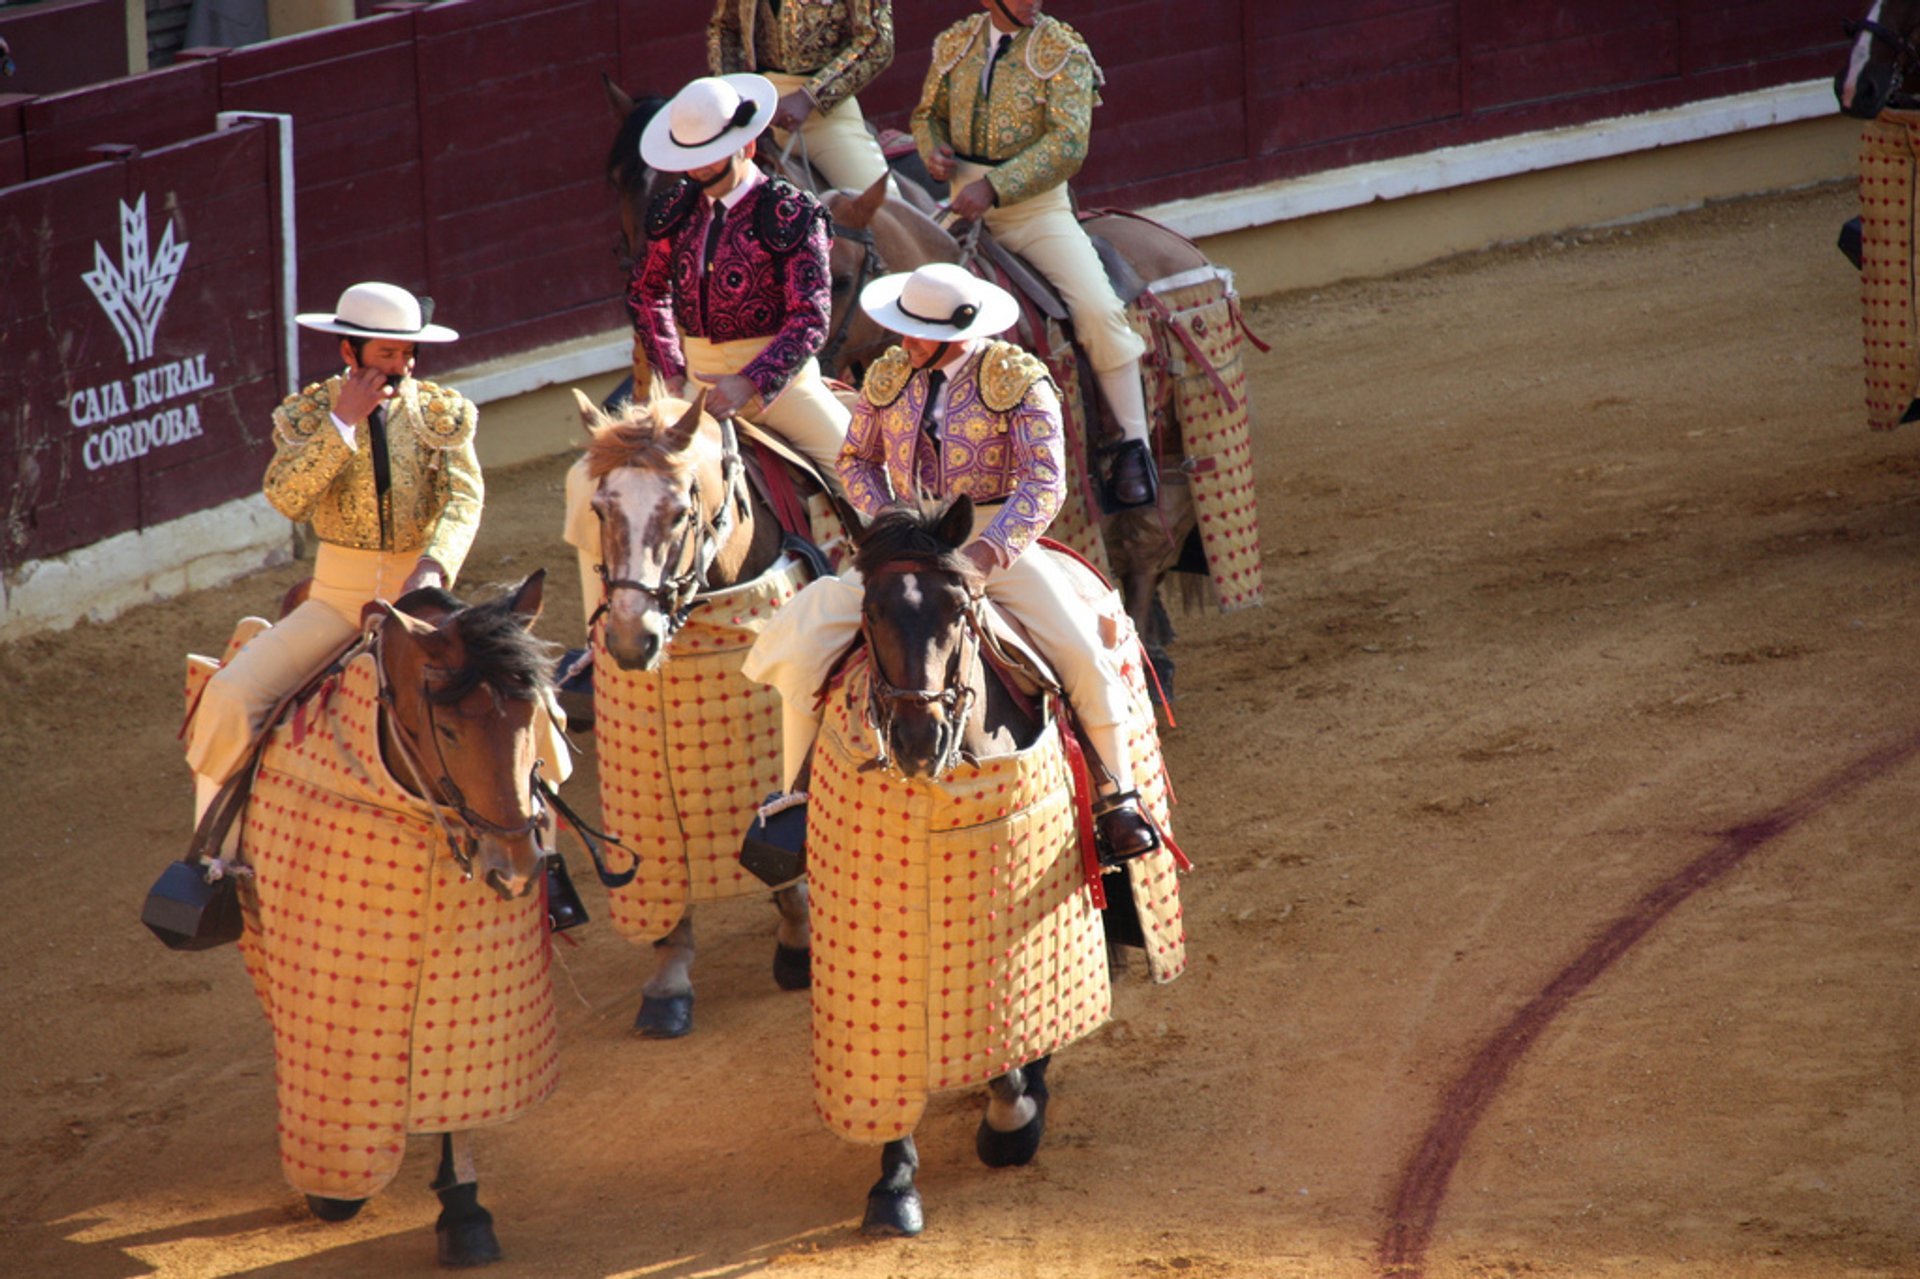 Best time for Bullfighting Season in Spain 2019 & Map - Rove me